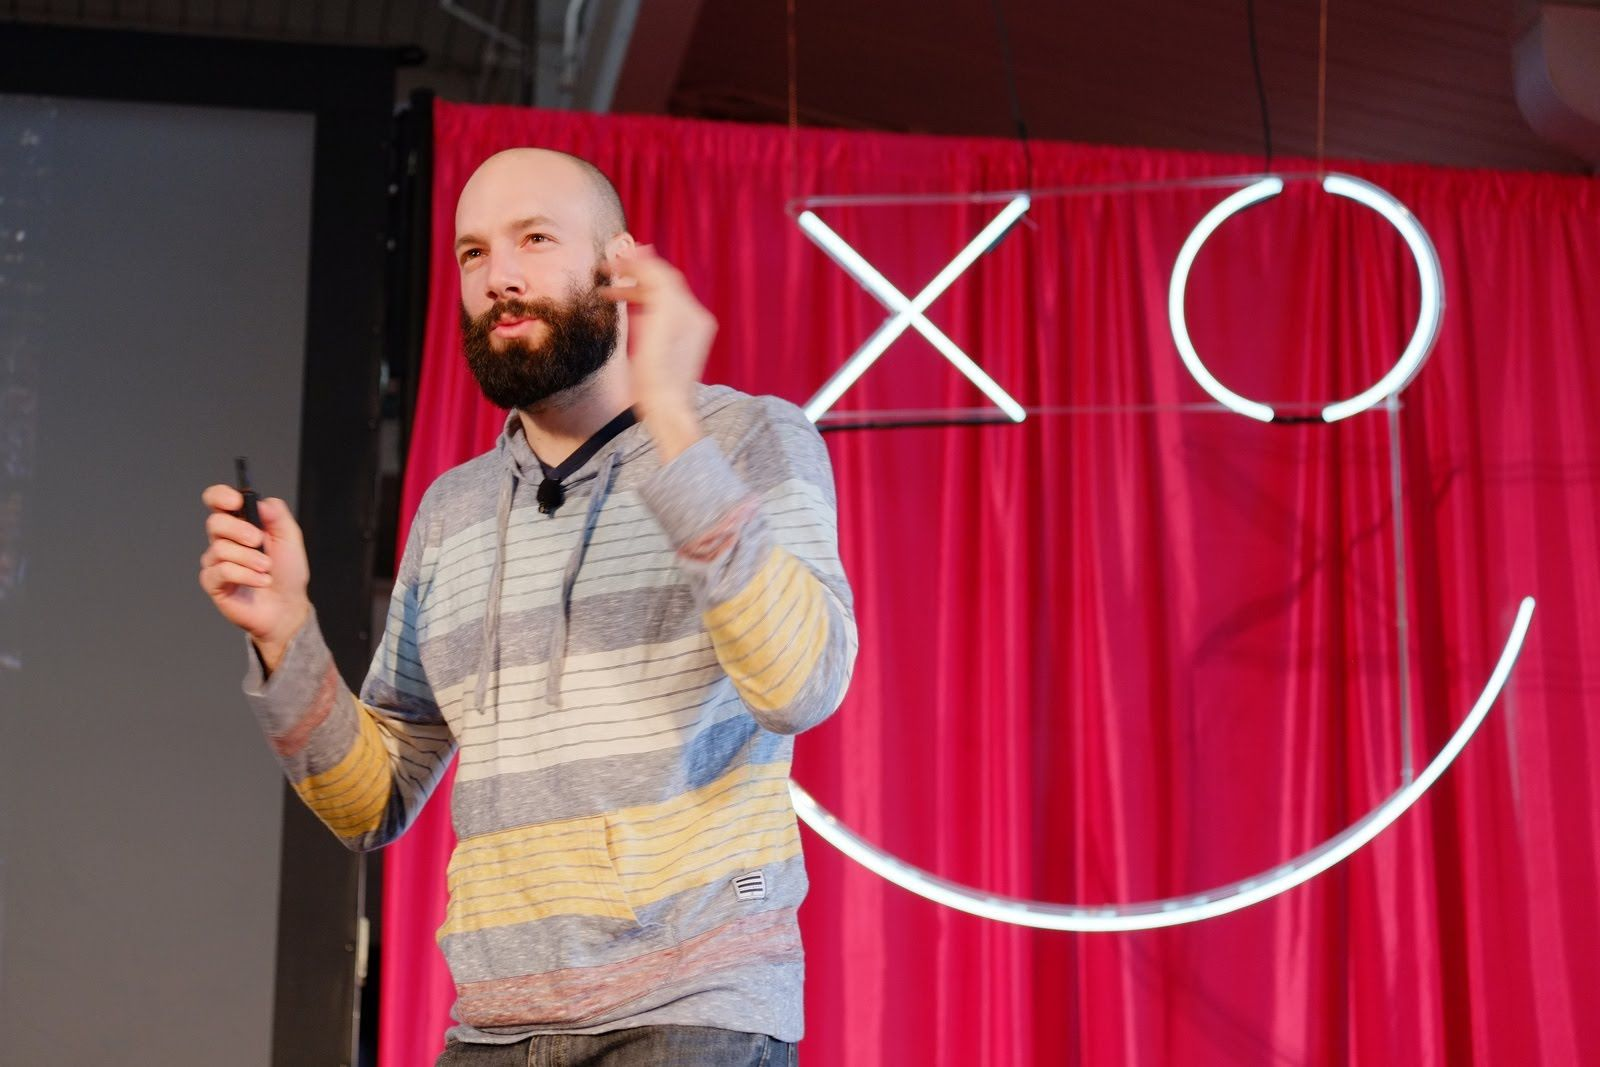 Multi-instrumentalist, songwriter, and filmmaker Jack Conte may be best known as one-half of Pomplamoose, the indie-pop duo that racked up over 80 million vi...